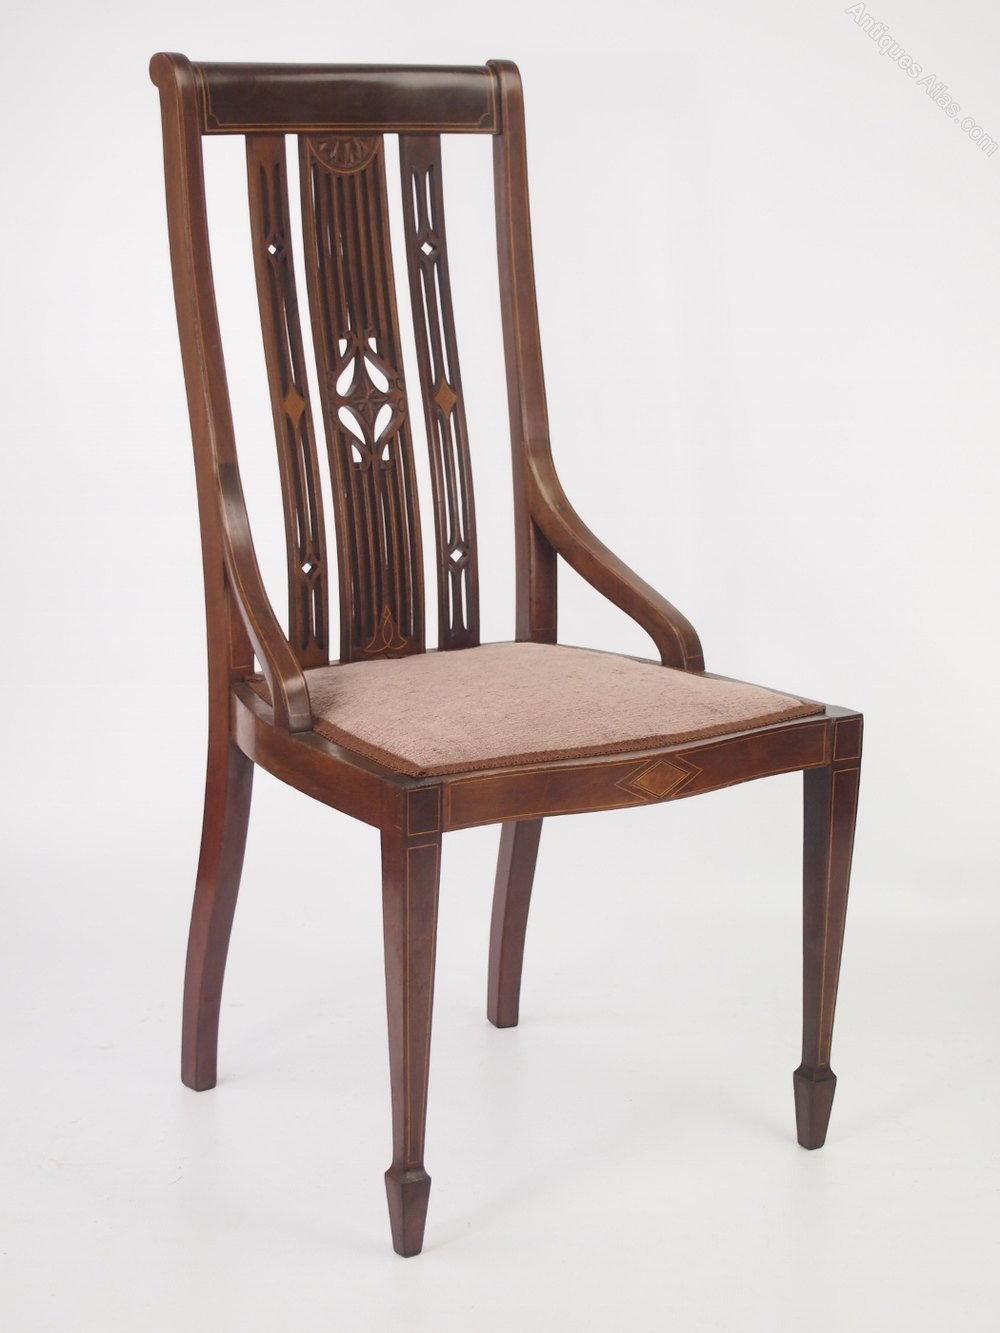 Chair Dressing Table ~ Edwardian mahogany inlaid dressing table chair